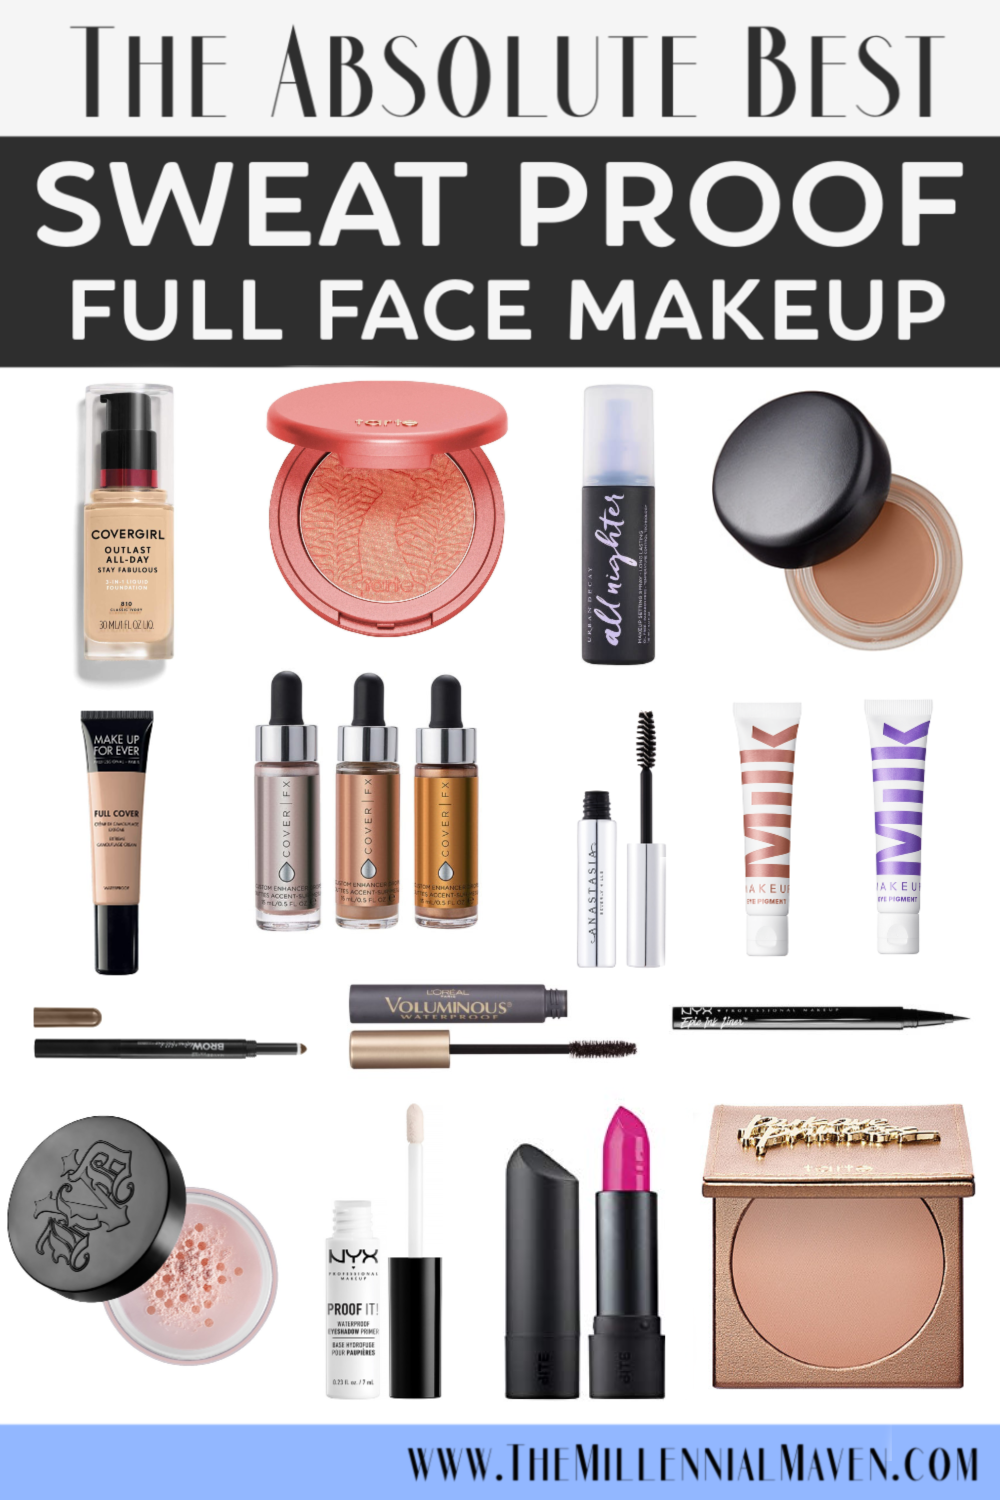 *UPDATED 2019* The Best Sweat Proof Makeup Products for a Long-Wearing, Full Face Look | The Millennial Maven